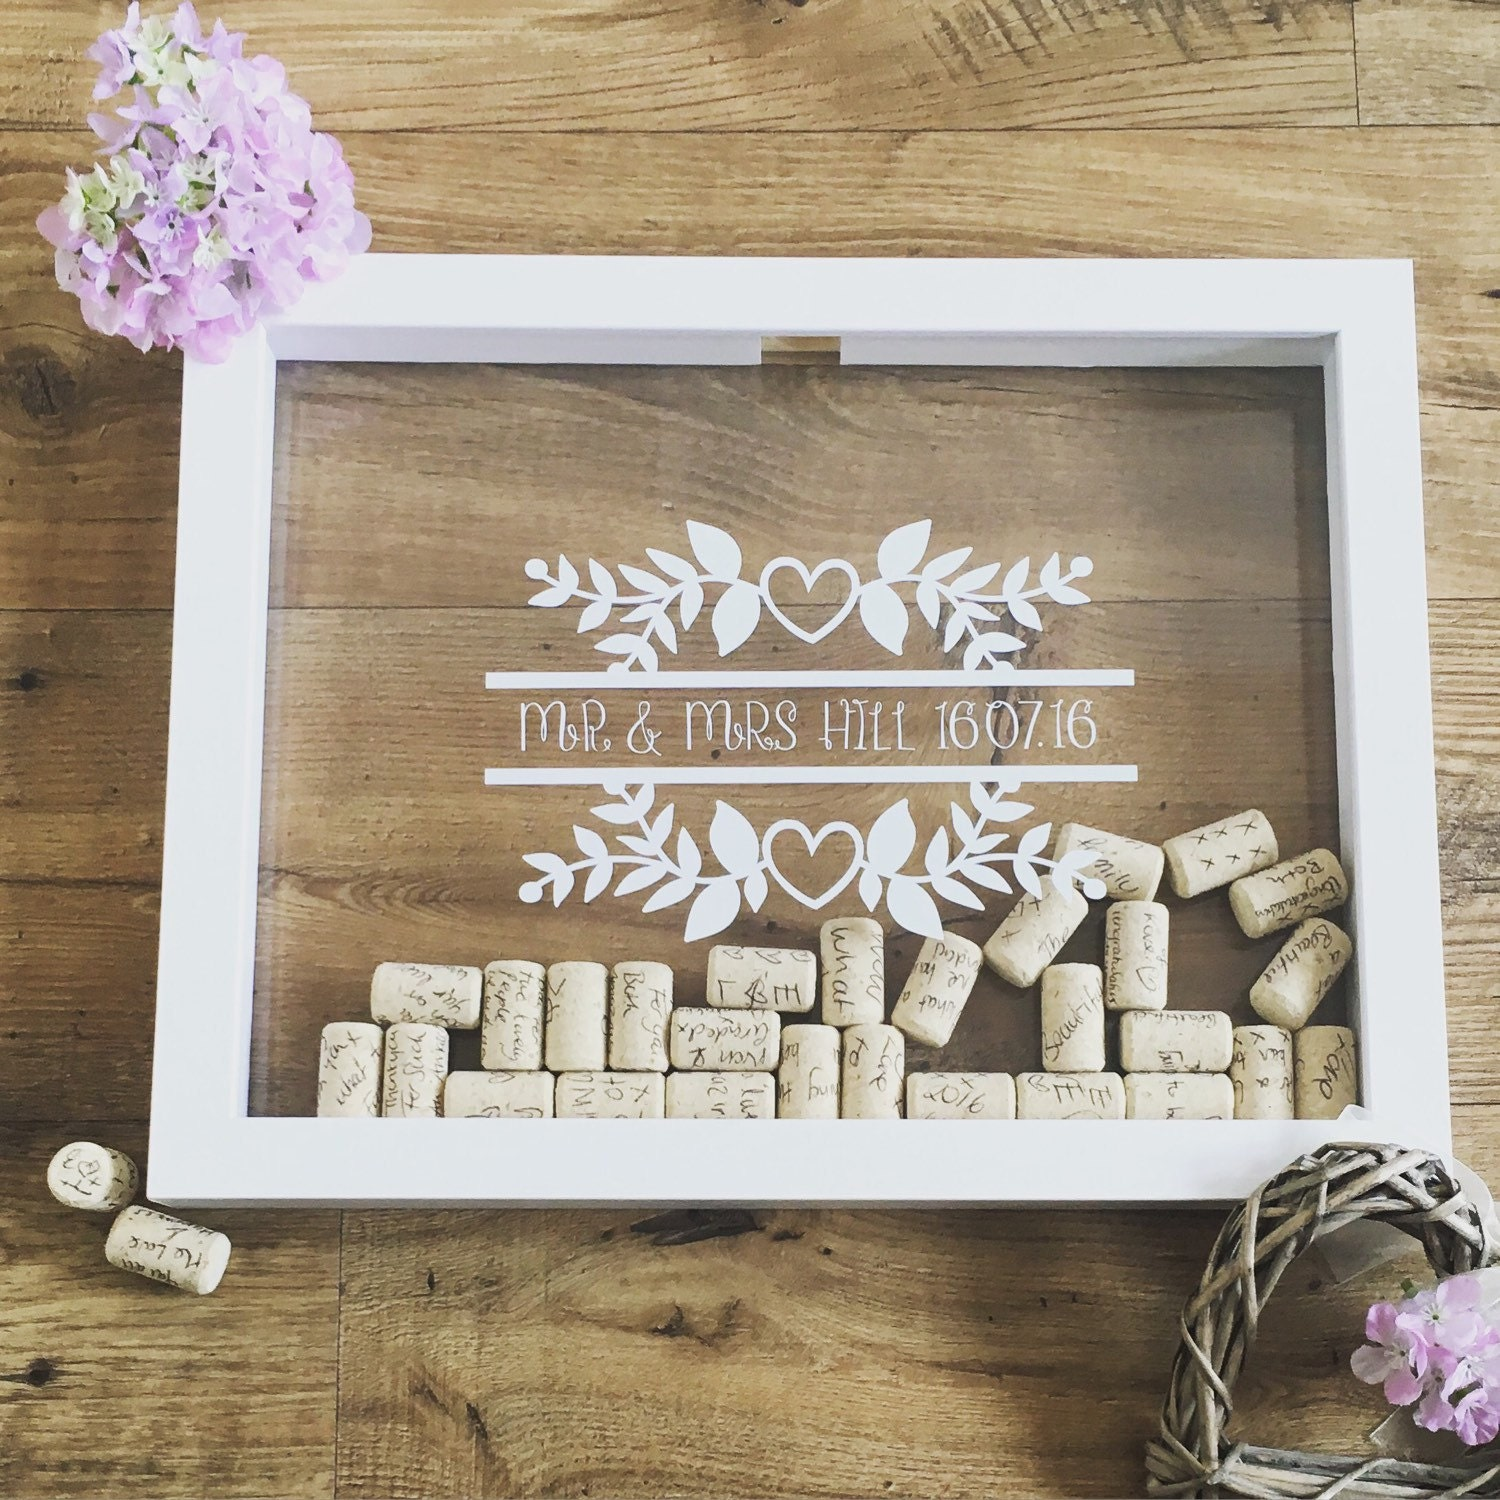 Wine Cork Wedding: Wedding Dropbox Guestbook Wine Cork Holder Wine Cork Frame